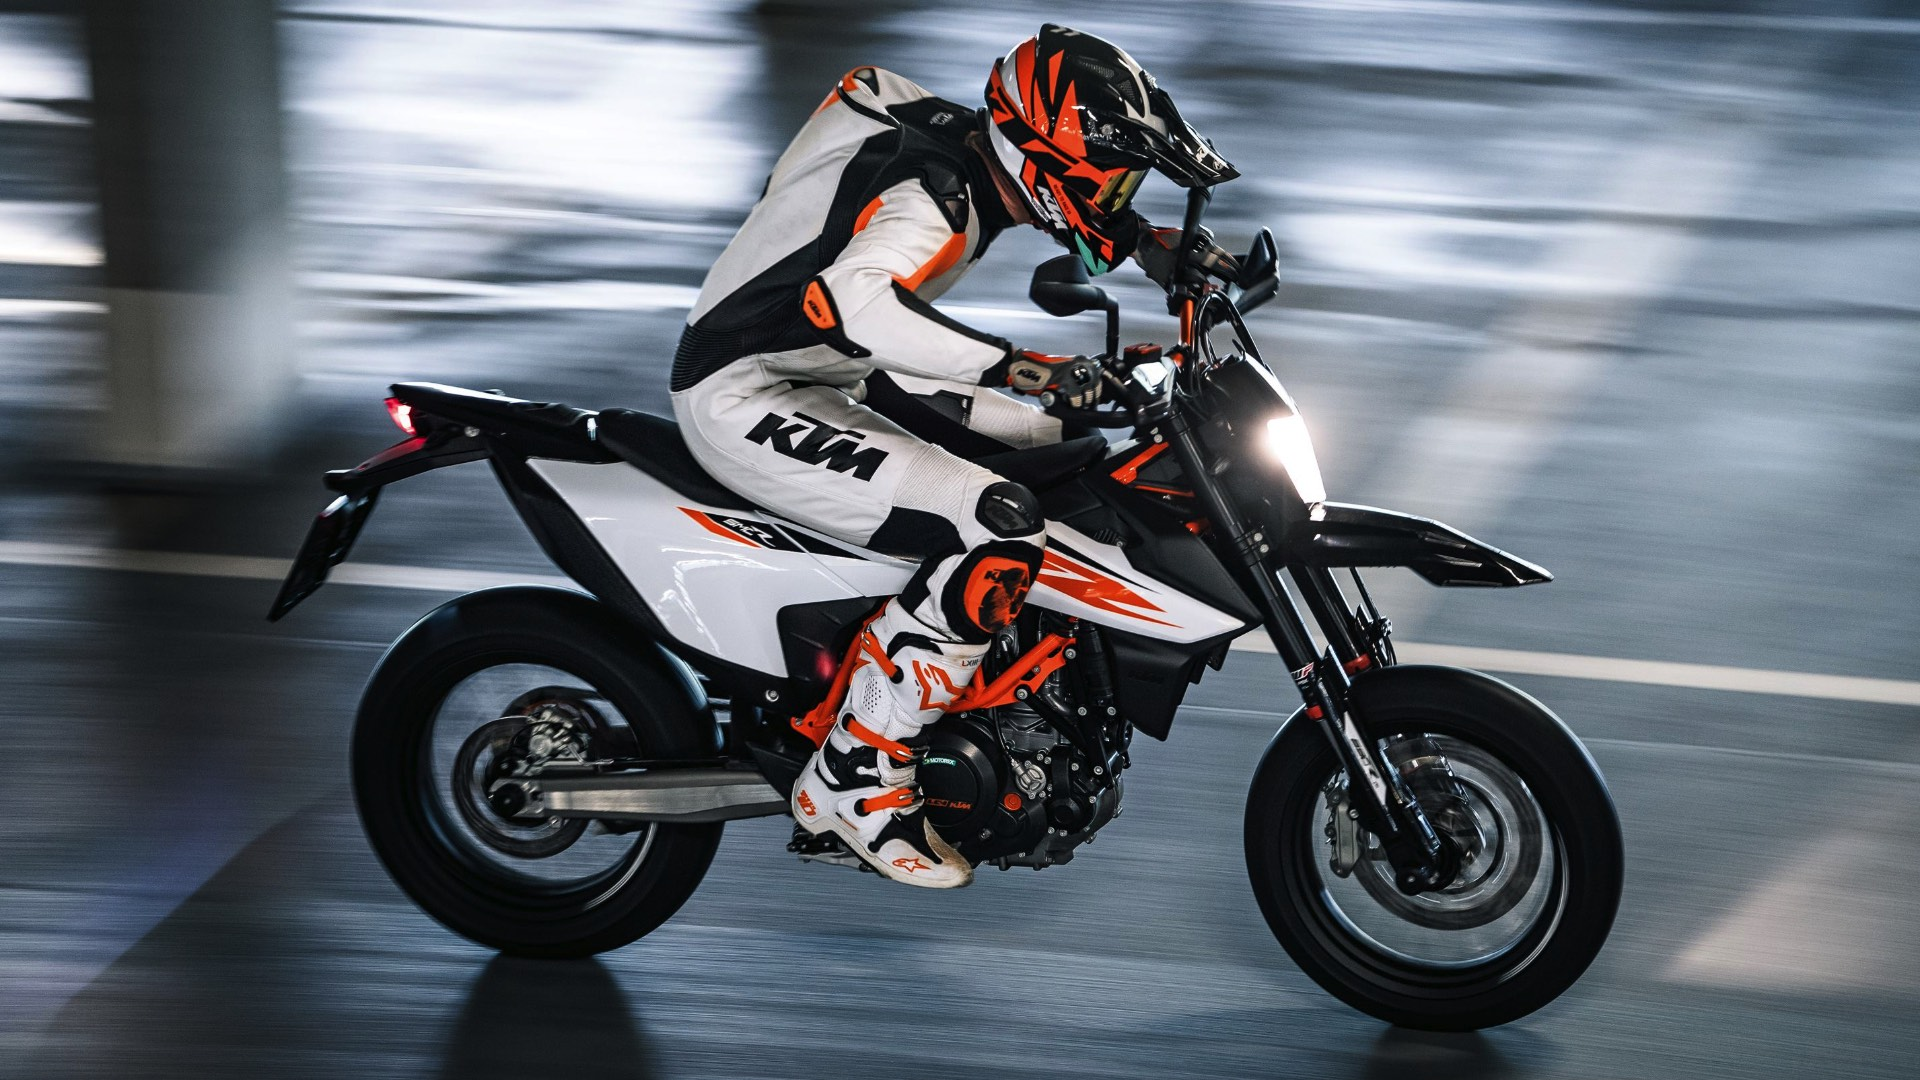 2019 KTM 690 SMC R First Look: On-Street